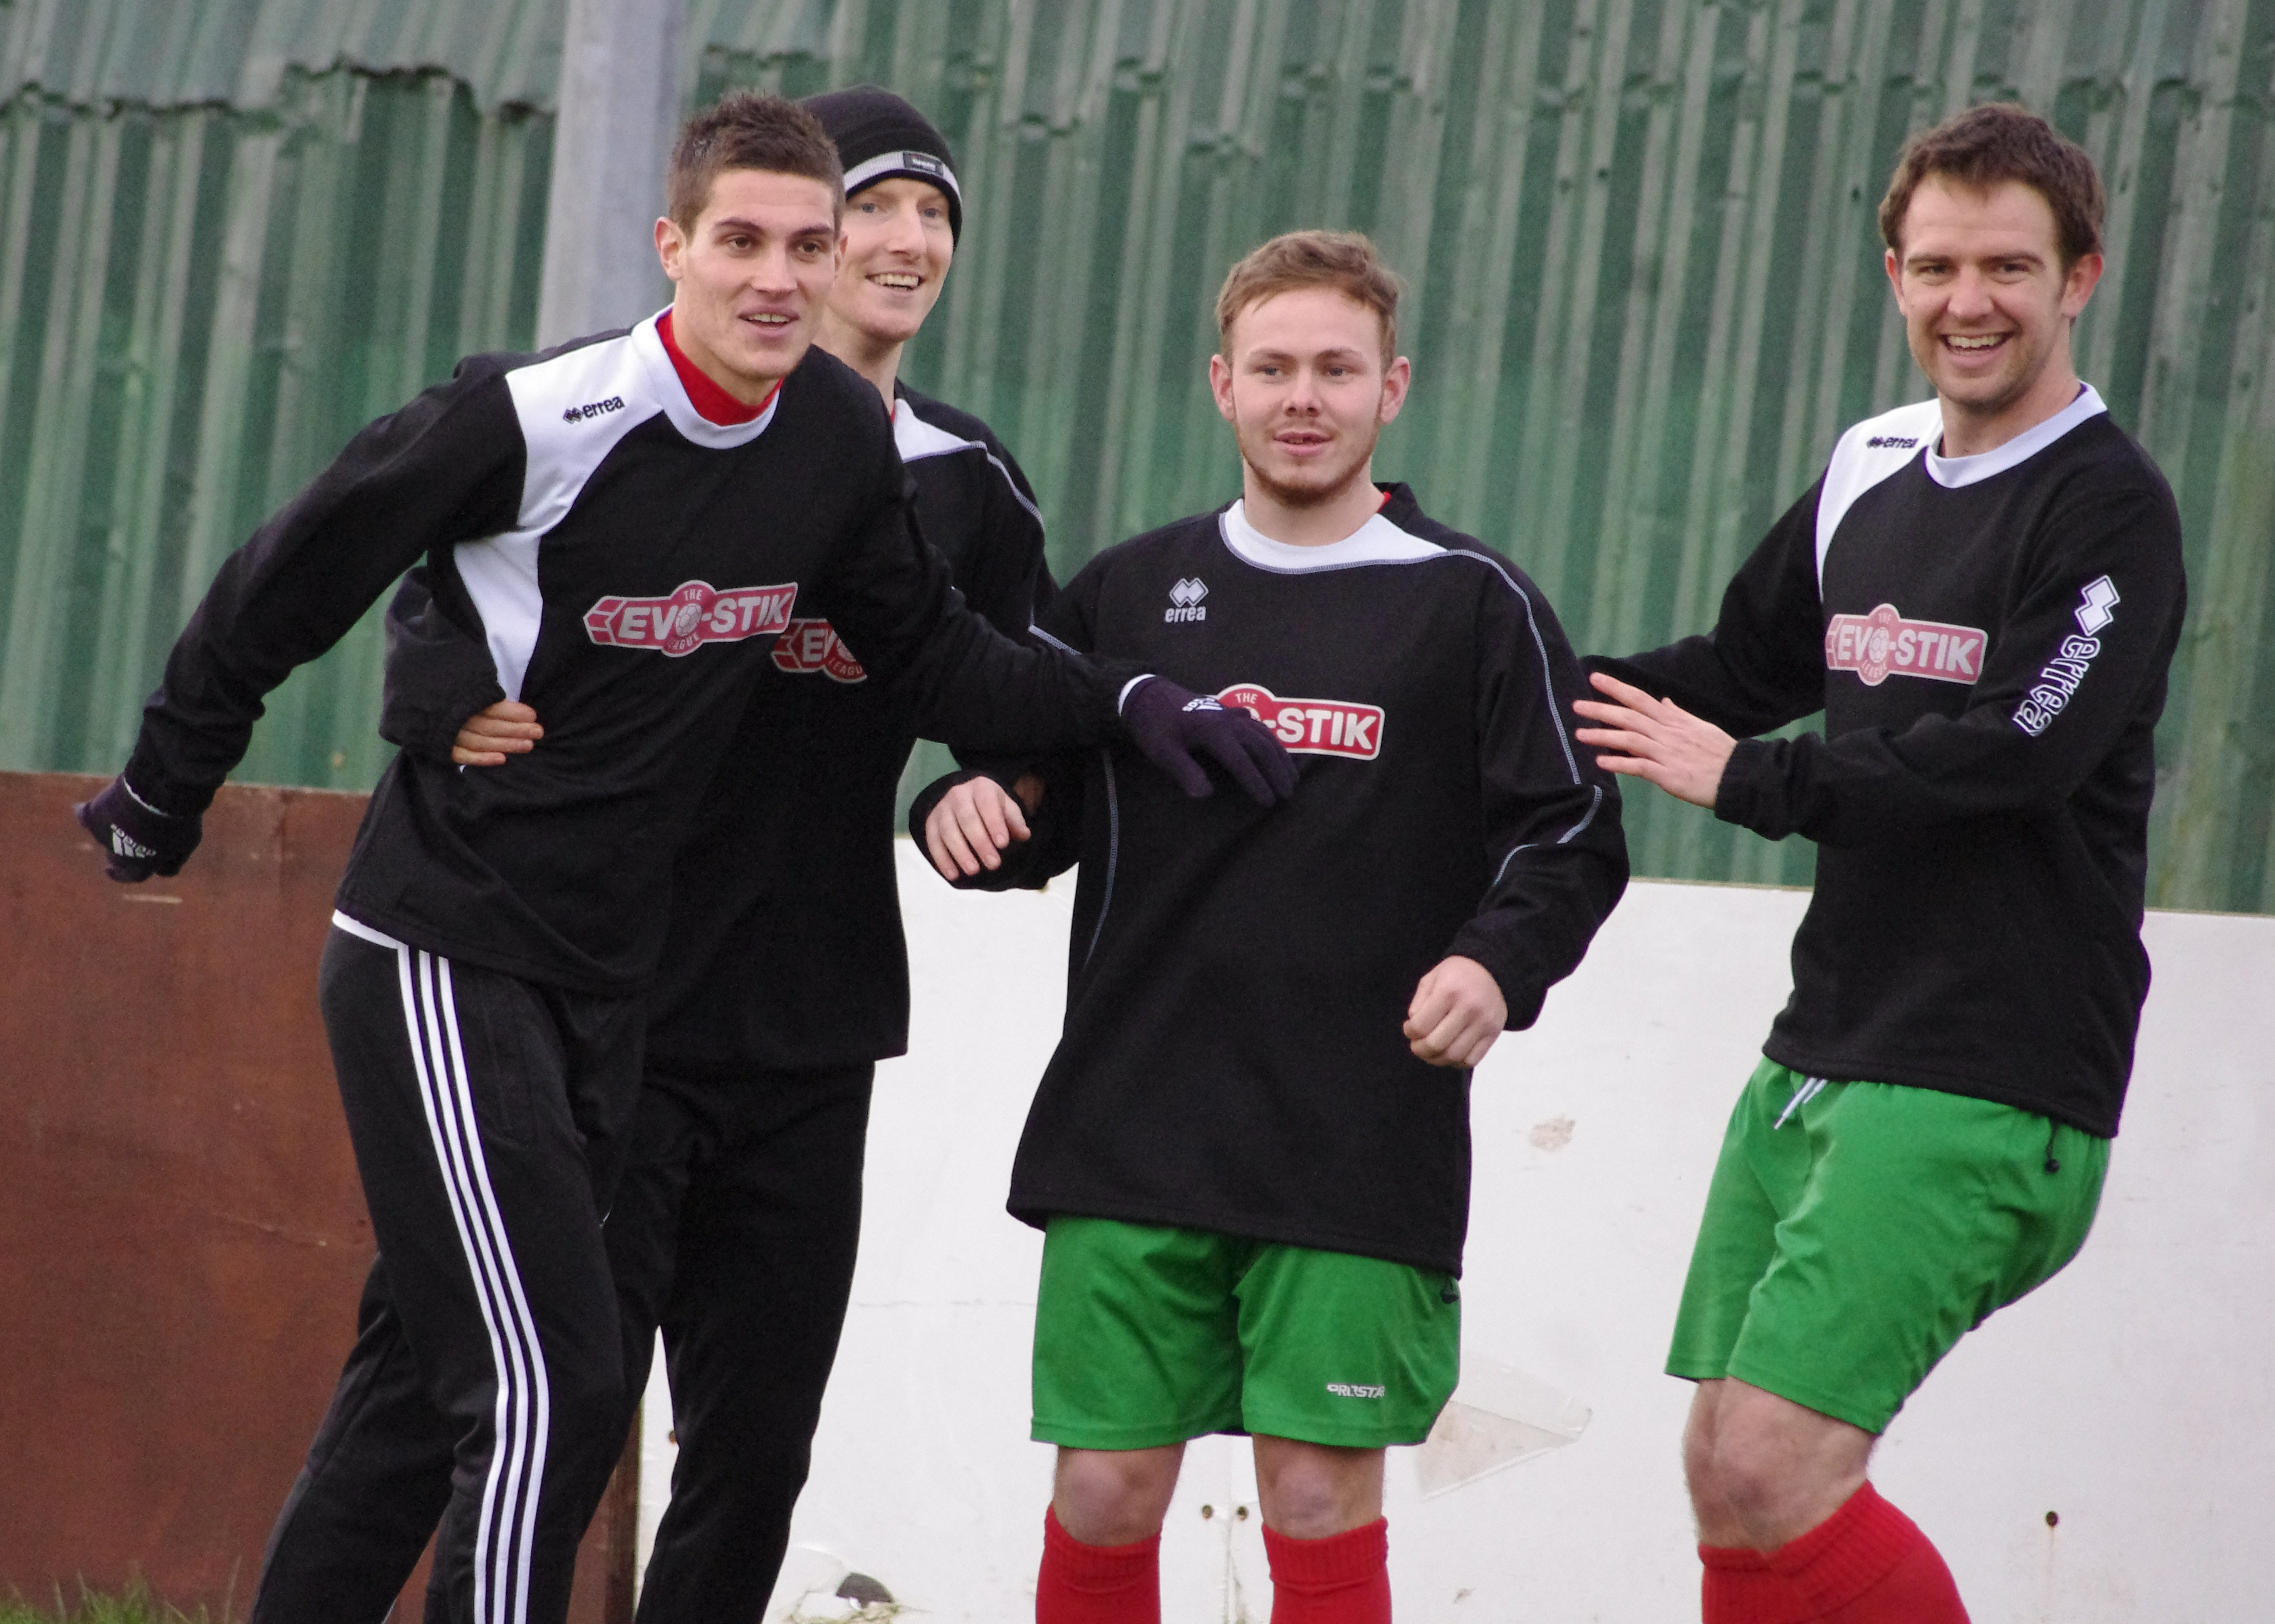 The players enjoy playing for Harrogate Railway